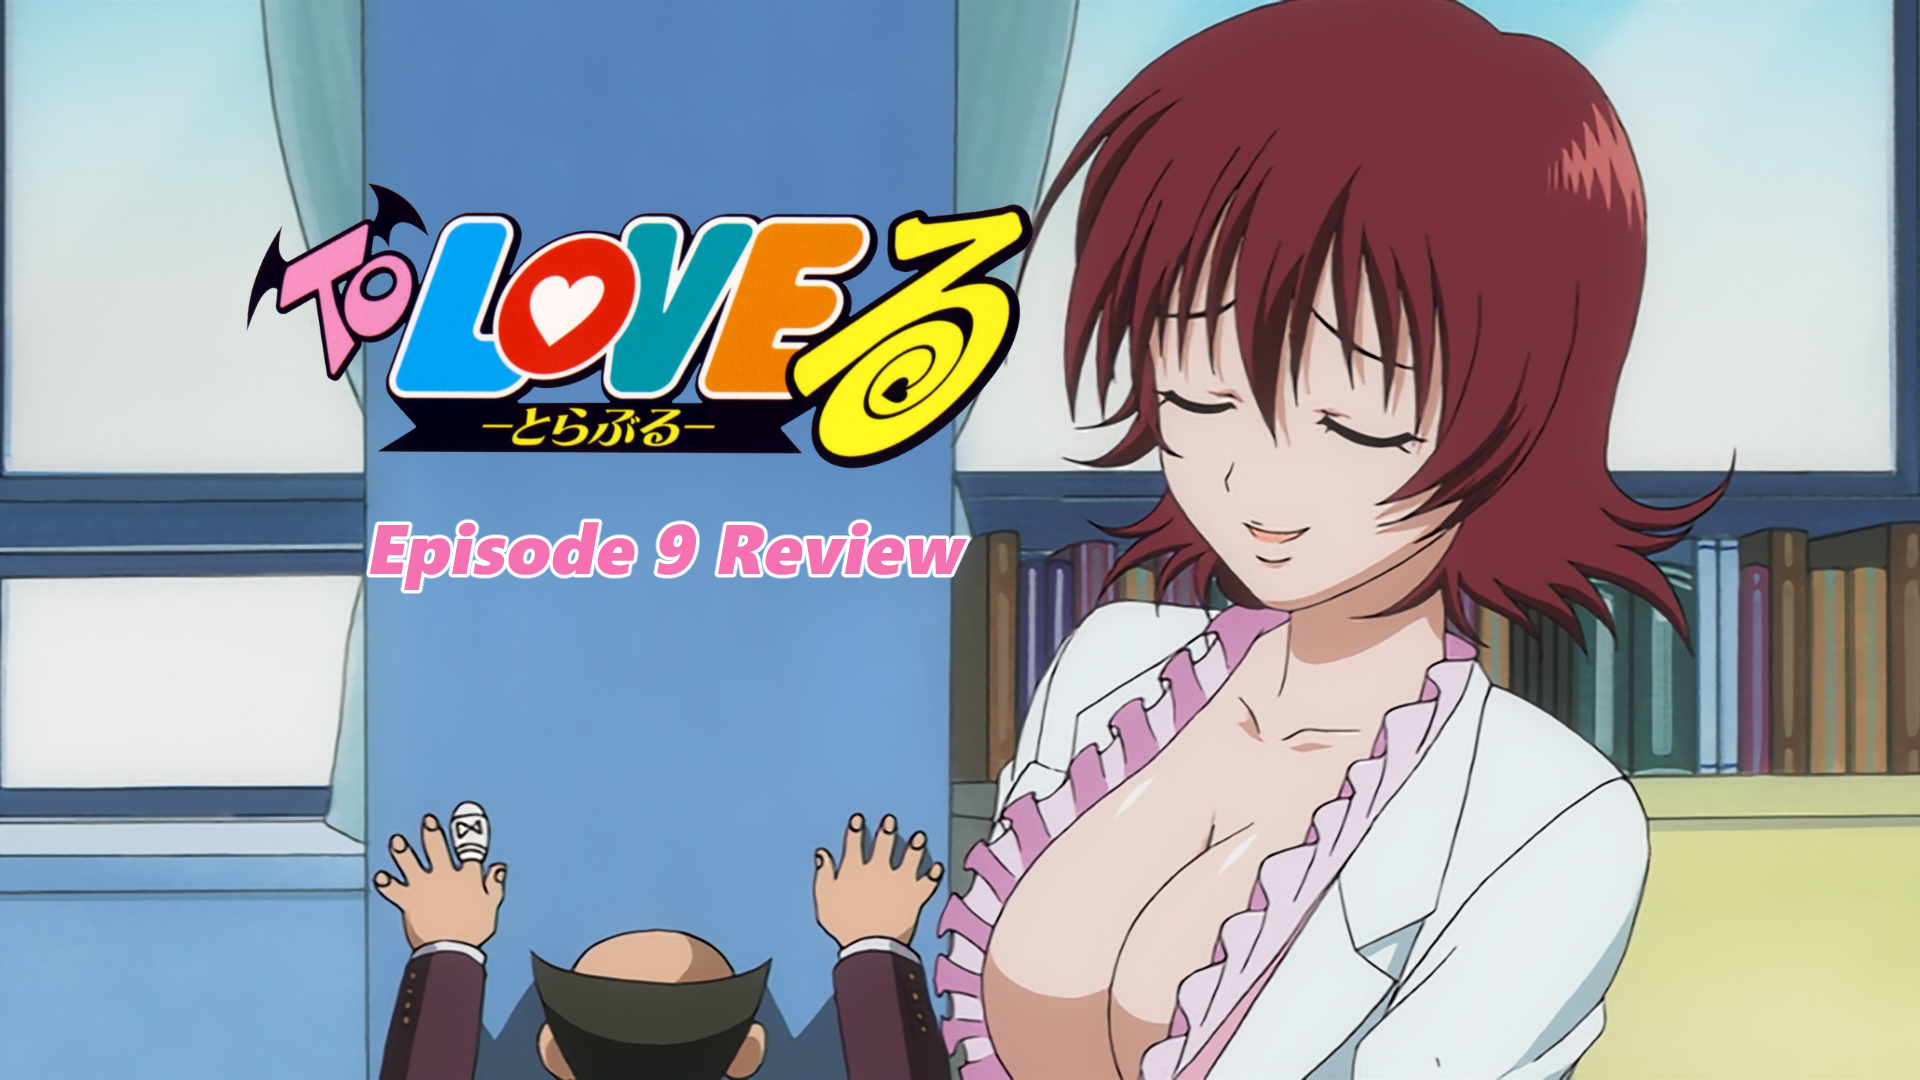 Irina and Matt Review 'To Love-Ru' Episode 9